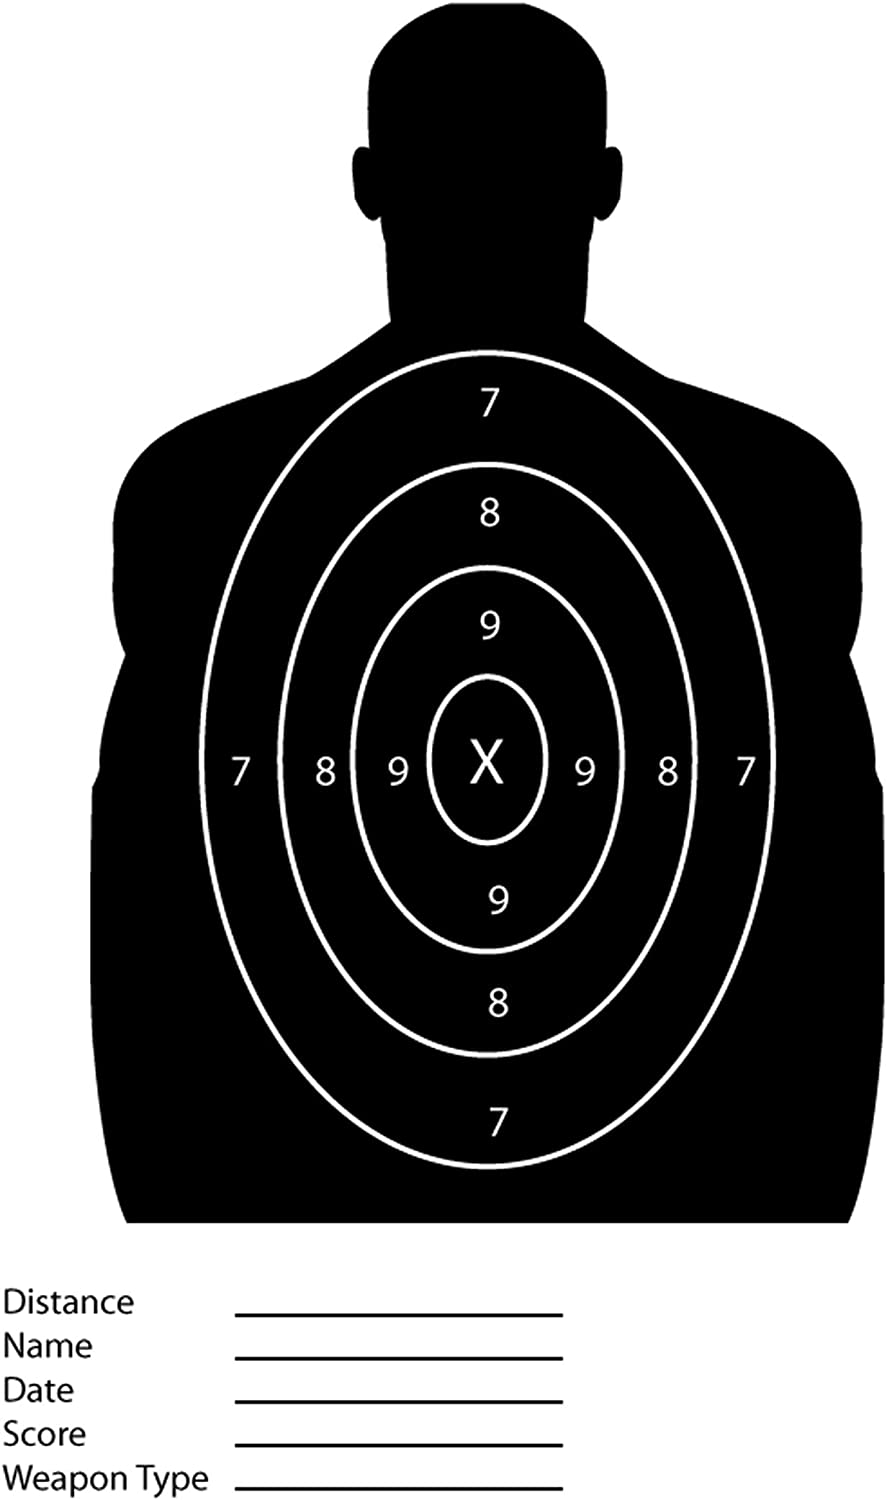 iCandy Combat Black Silhouette Paper Shooting Targets for The Range